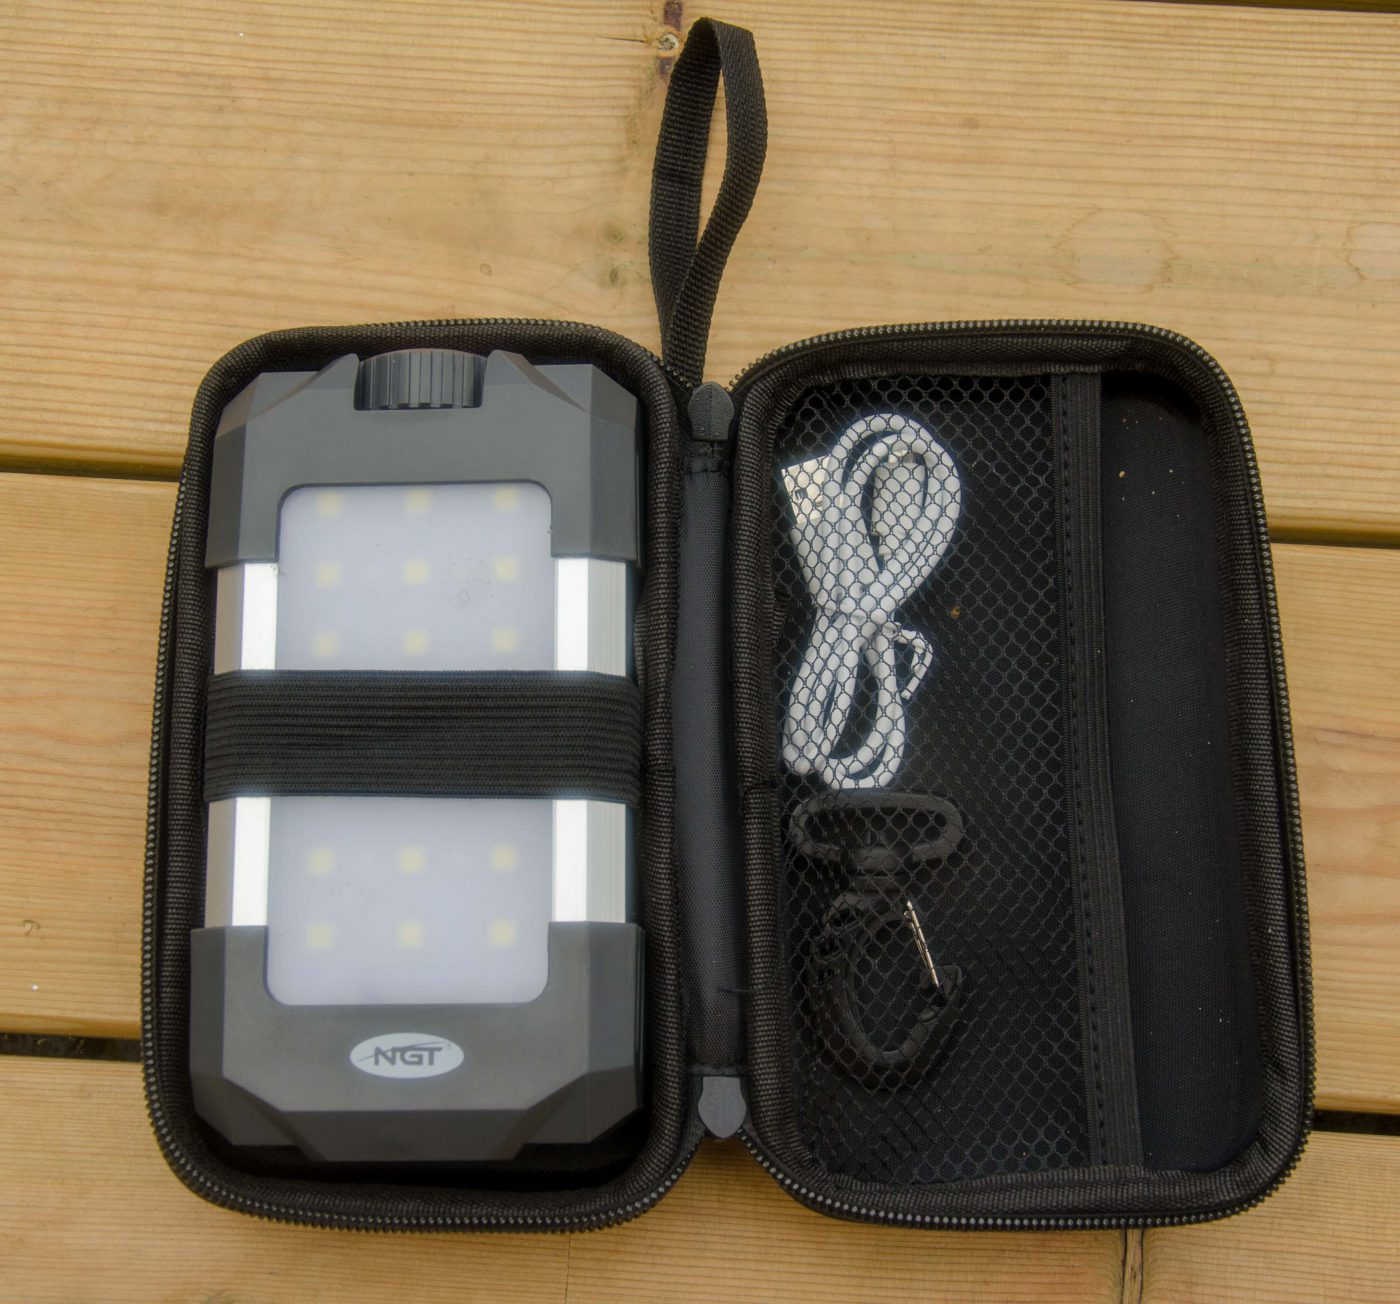 NGT Floodlight and Power Bank System